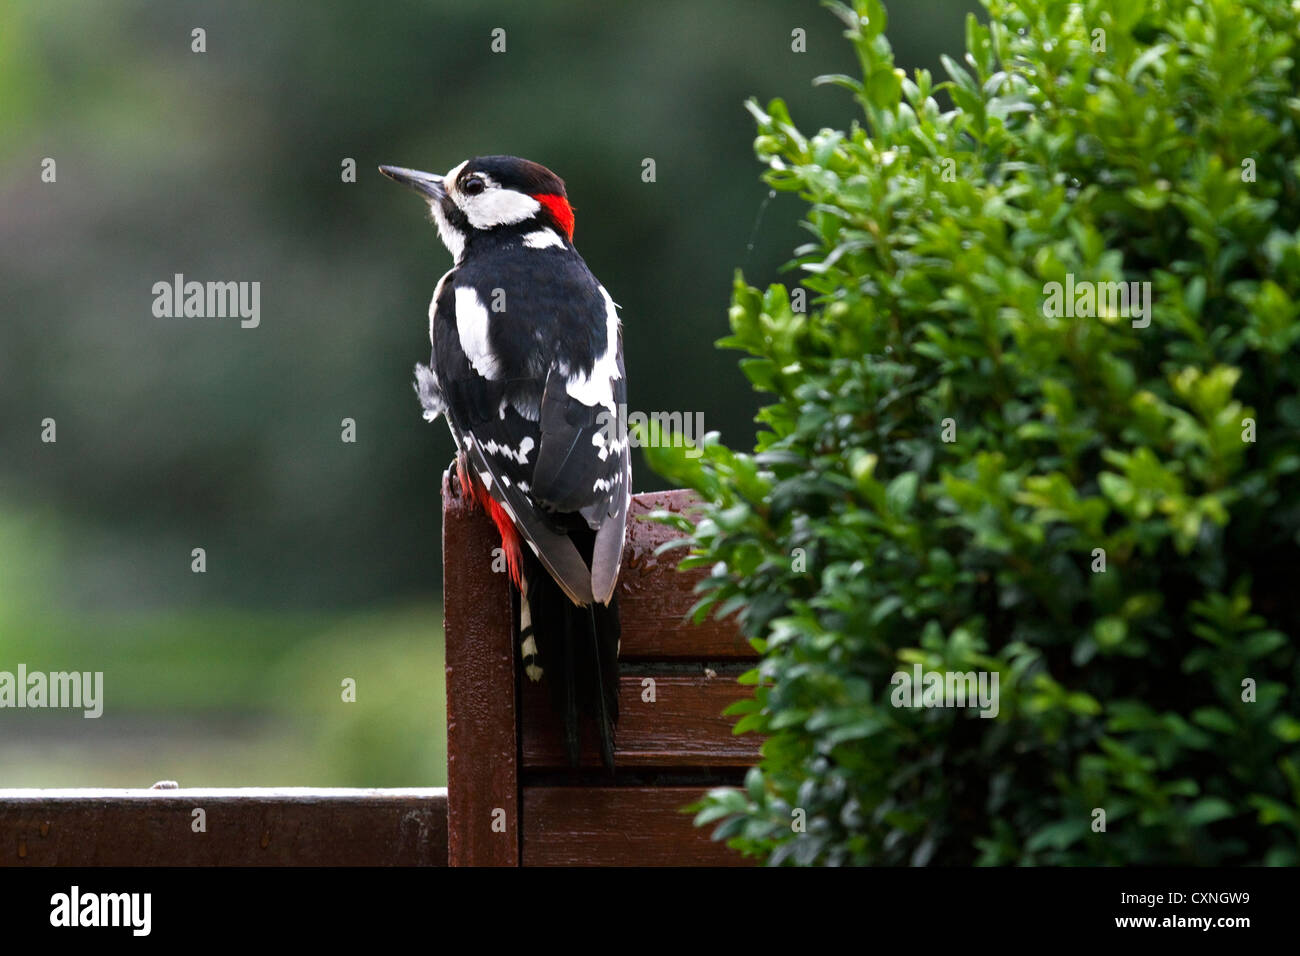 Great Spotted Woodpecker / Greater Spotted Woodpecker (Dendrocopos major) male perched on garden chair - Stock Image